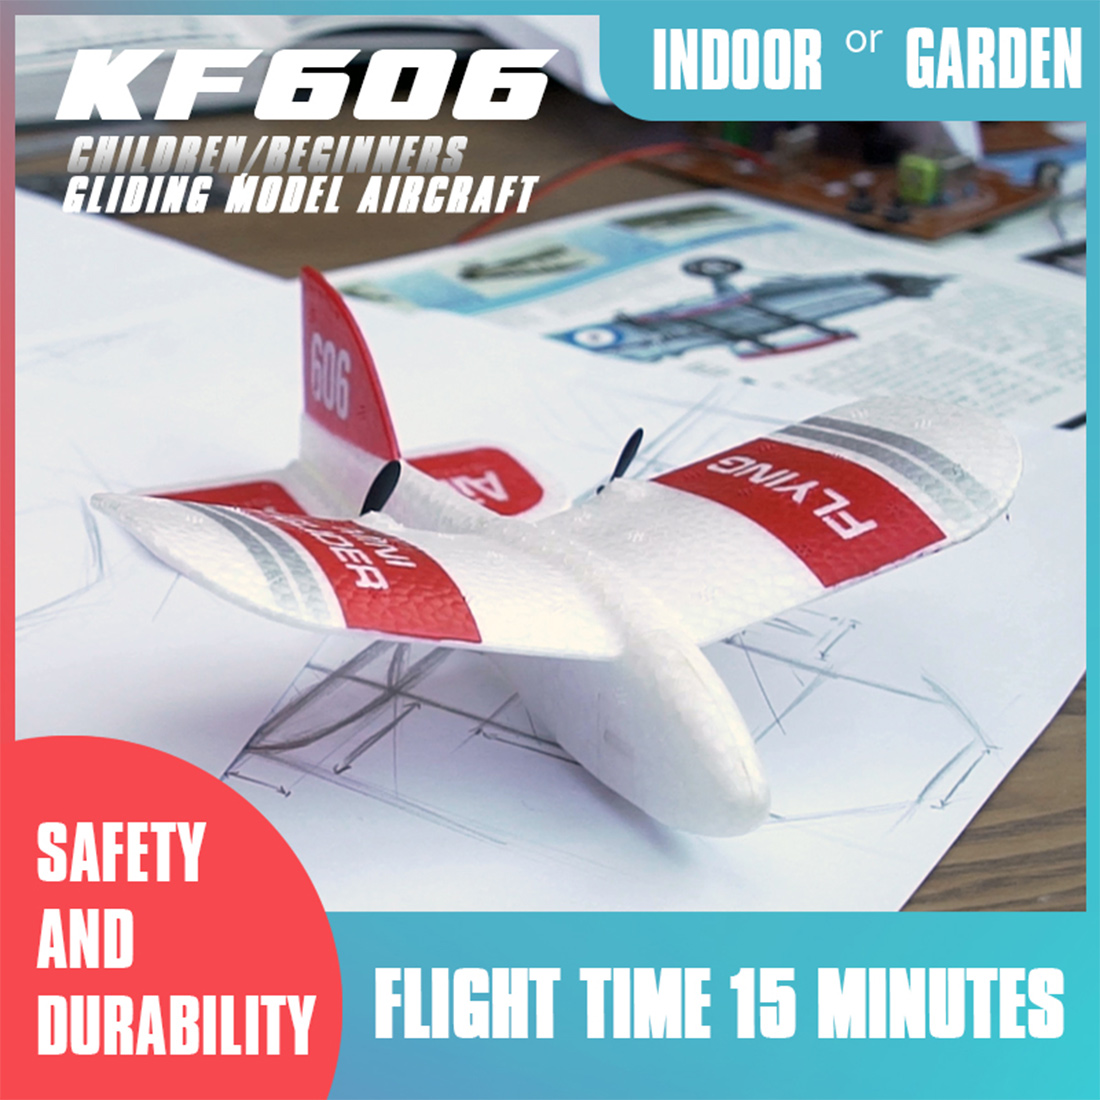 KF606 RC Airplane Flying Indoor Mini Aircraft EPP Foam Glider Flexibility 2.4G 2CH Build in Gyro RC Plane Toys Kids 2019 Gifts image